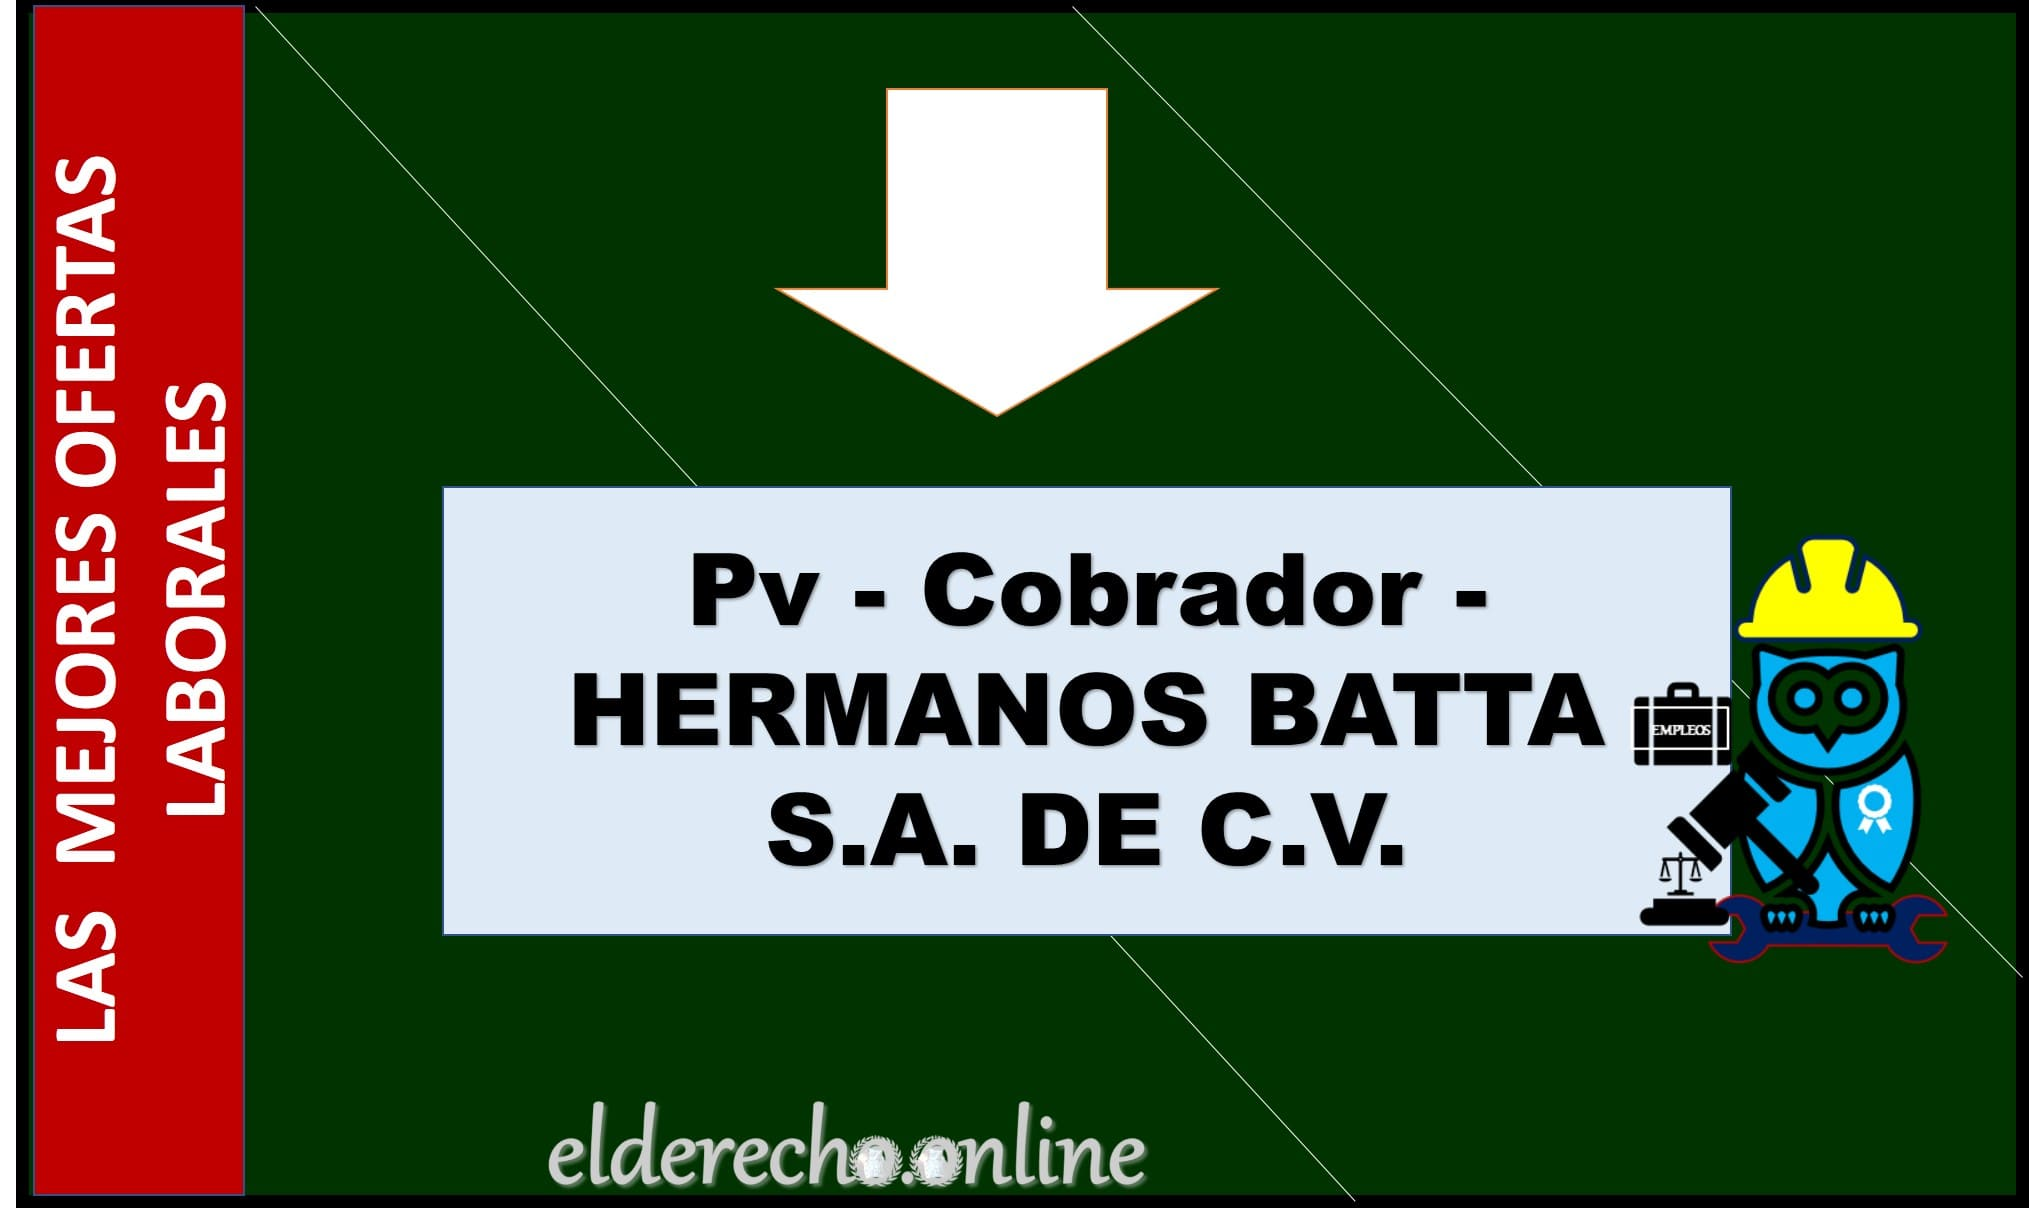 Photo of Pv – Cobrador – HERMANOS BATTA S.A. DE C.V.